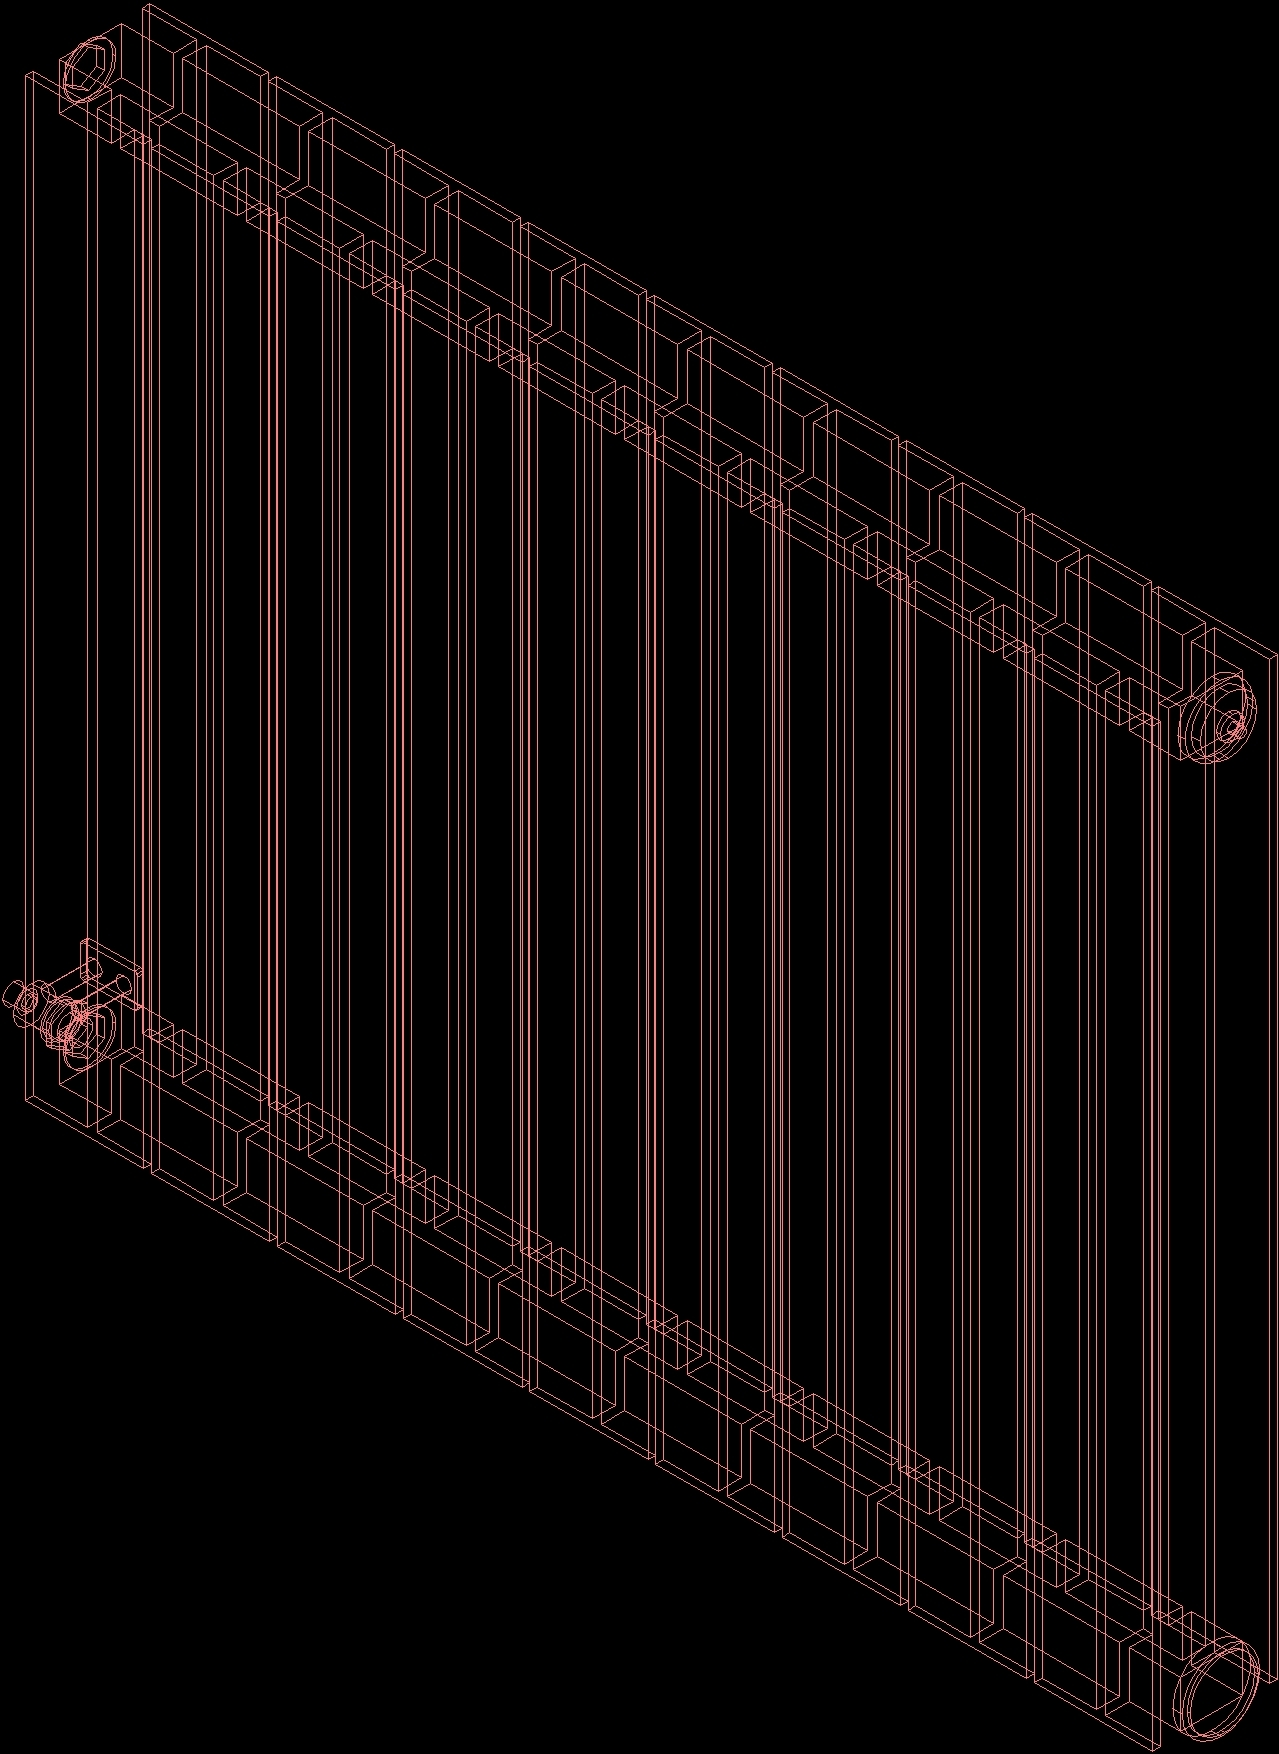 aluminiun radiator 3d dwg model for autocad  u2013 designs cad